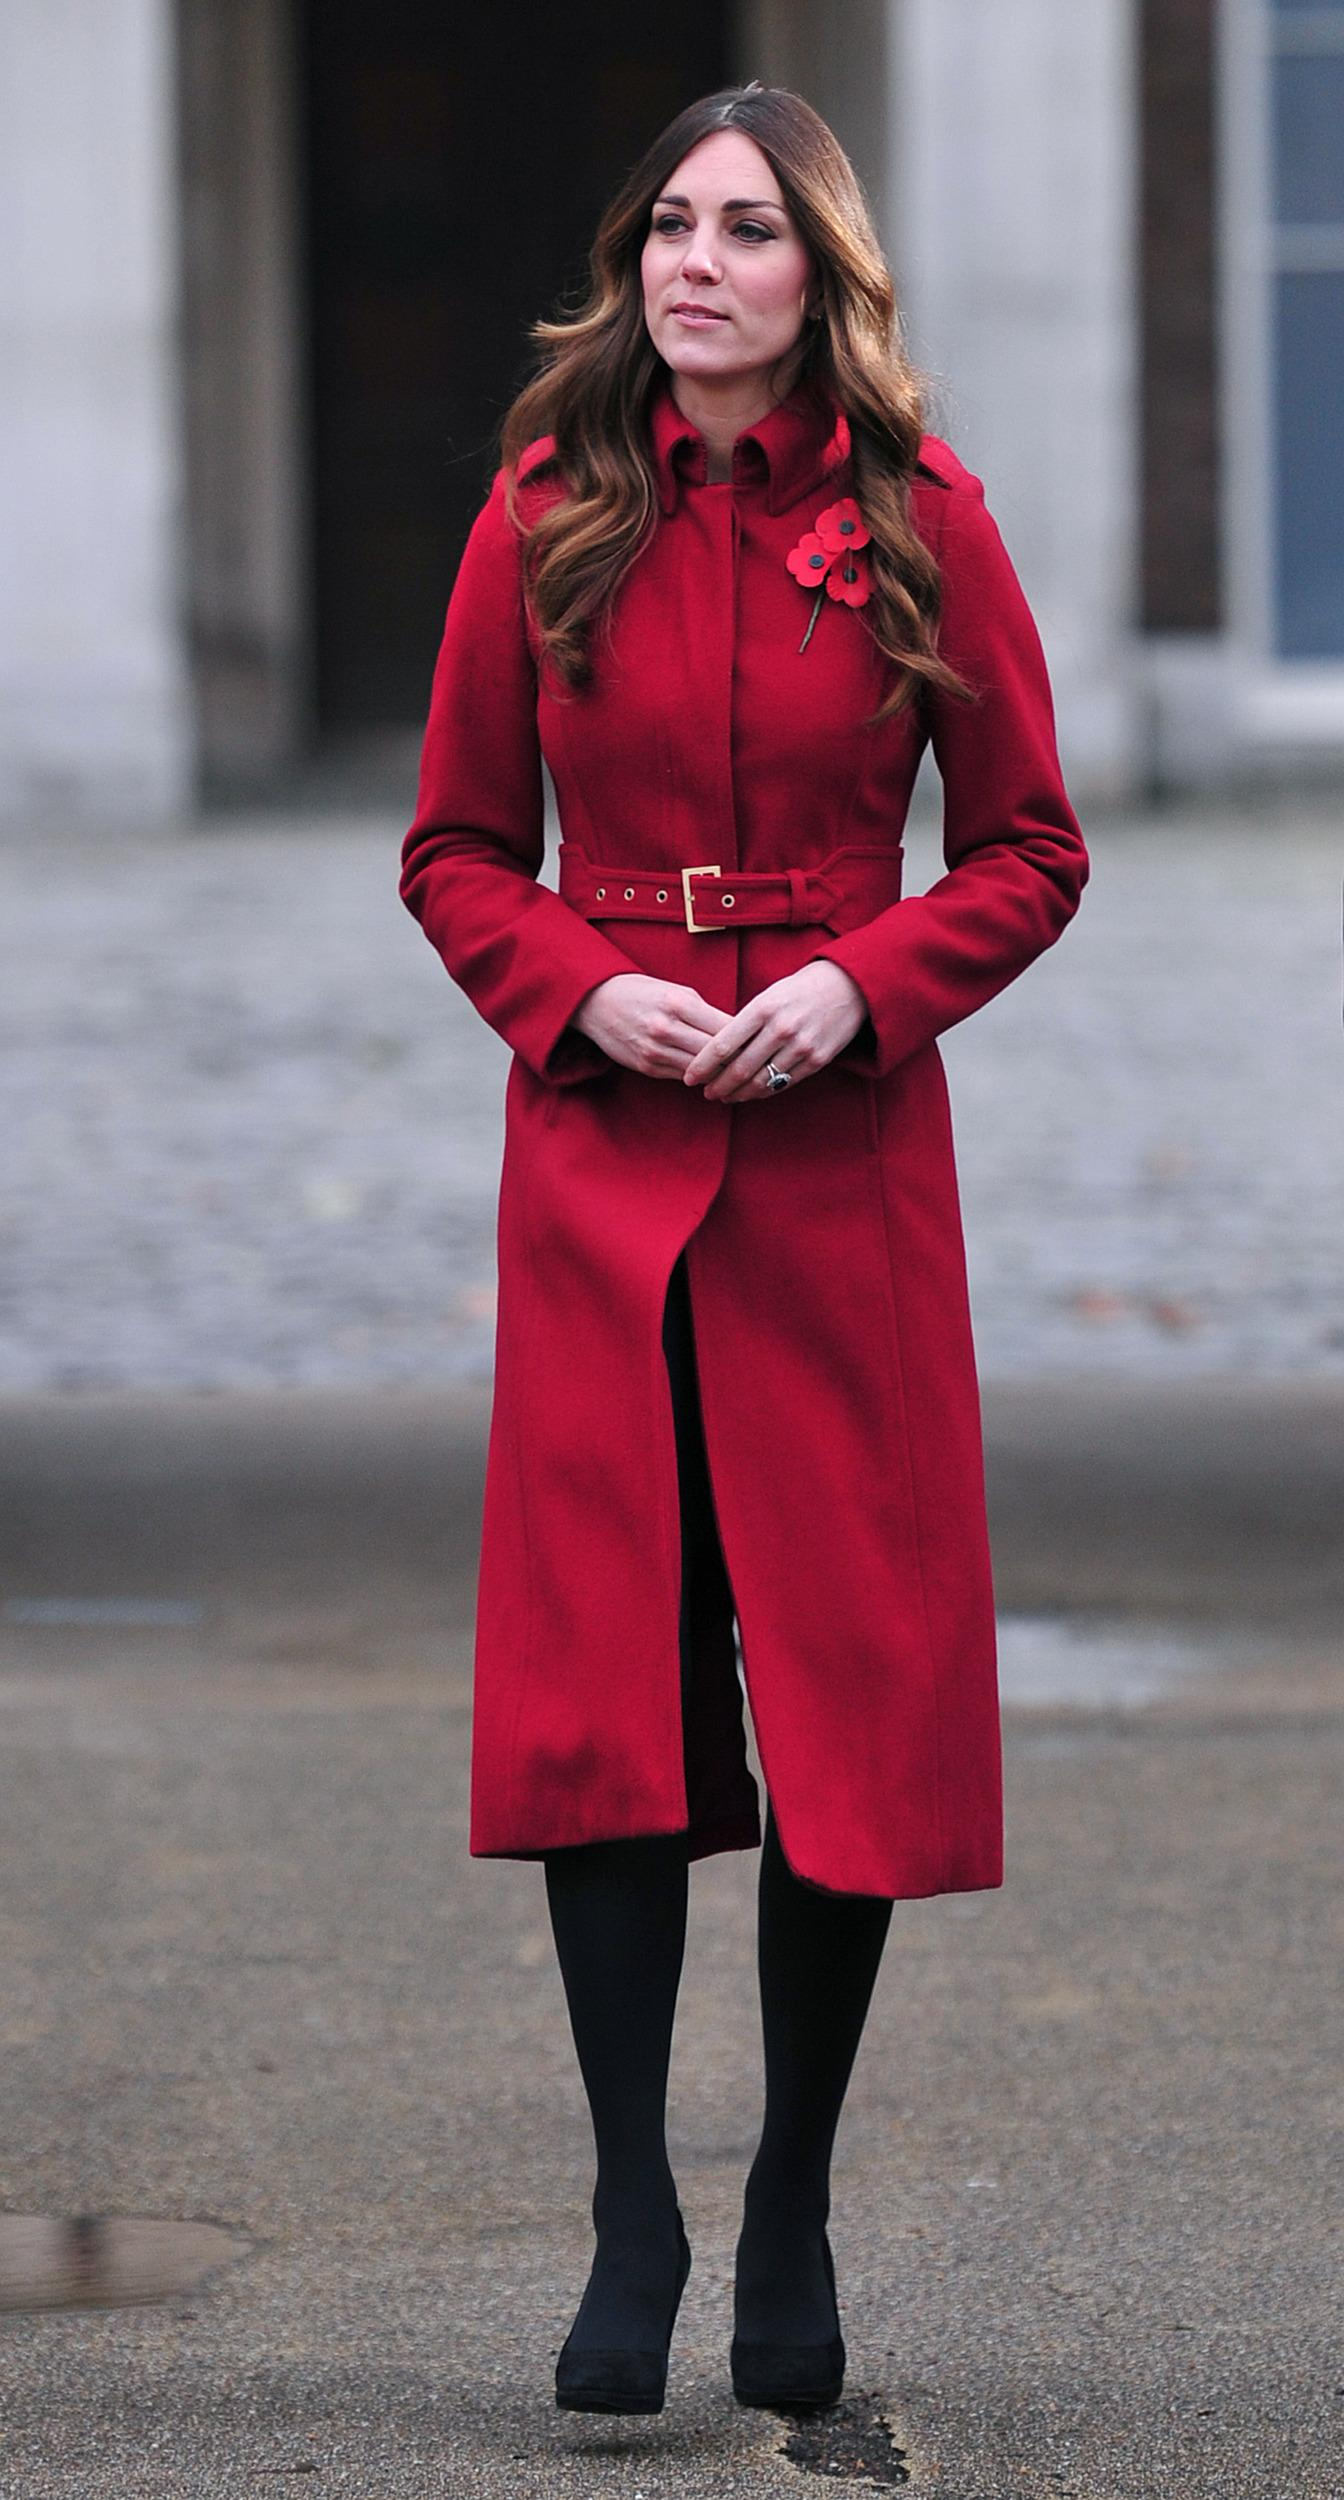 In honor of Poppy Day, William and Kate stepped out in London -- Kate wearing her long scarlet L.K. Bennett coat.